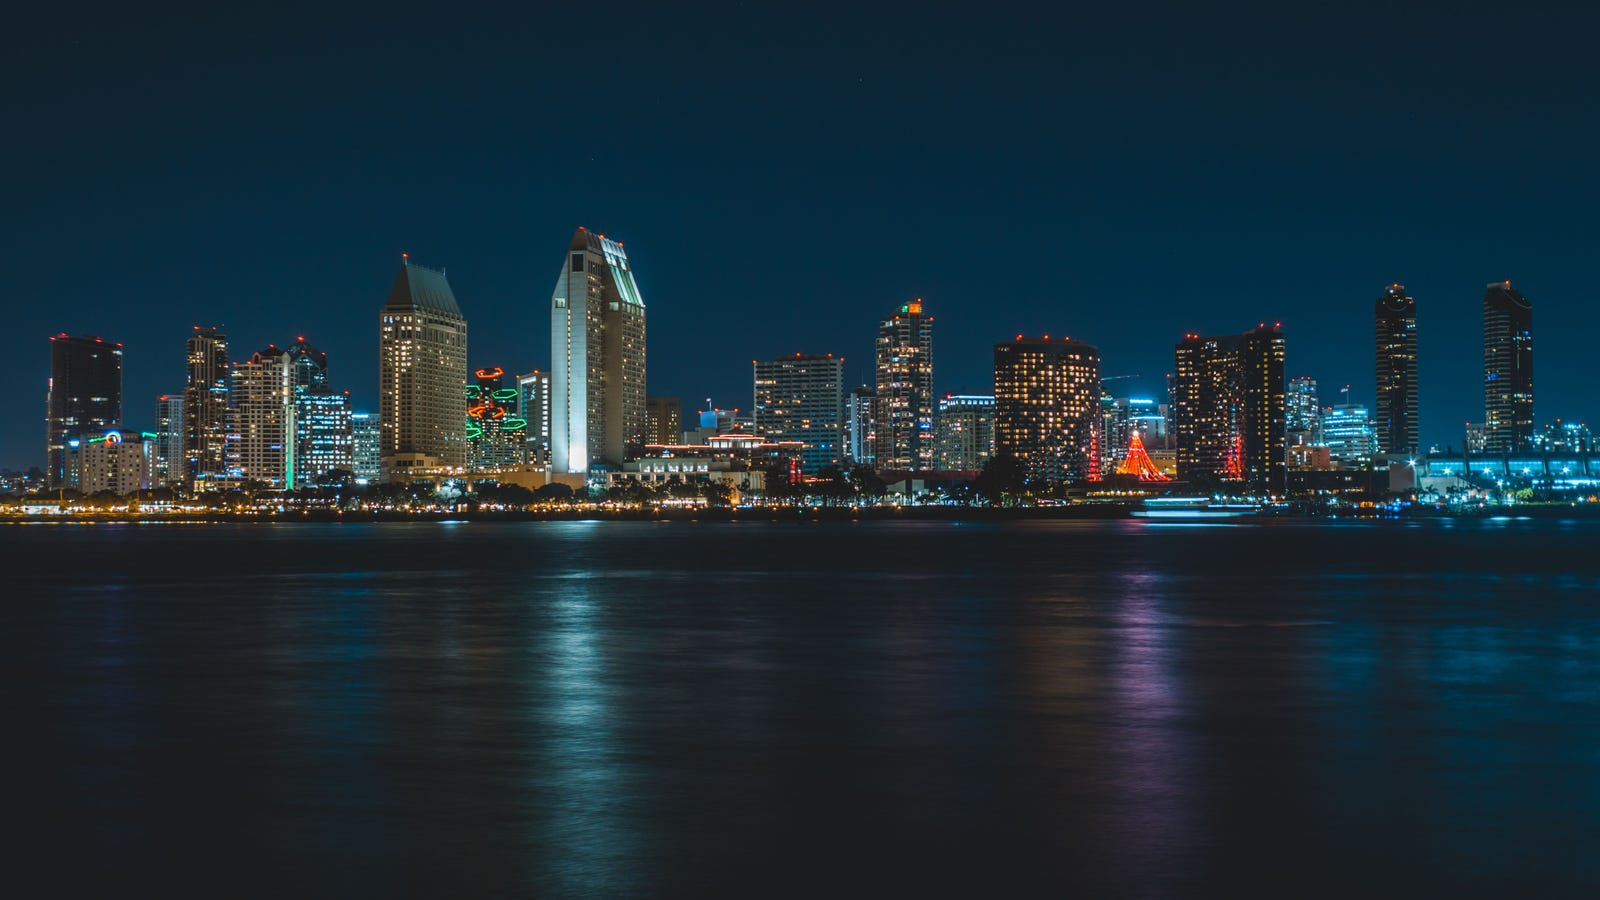 QnA VBage The Best San Diego Travel Tips From Our Readers